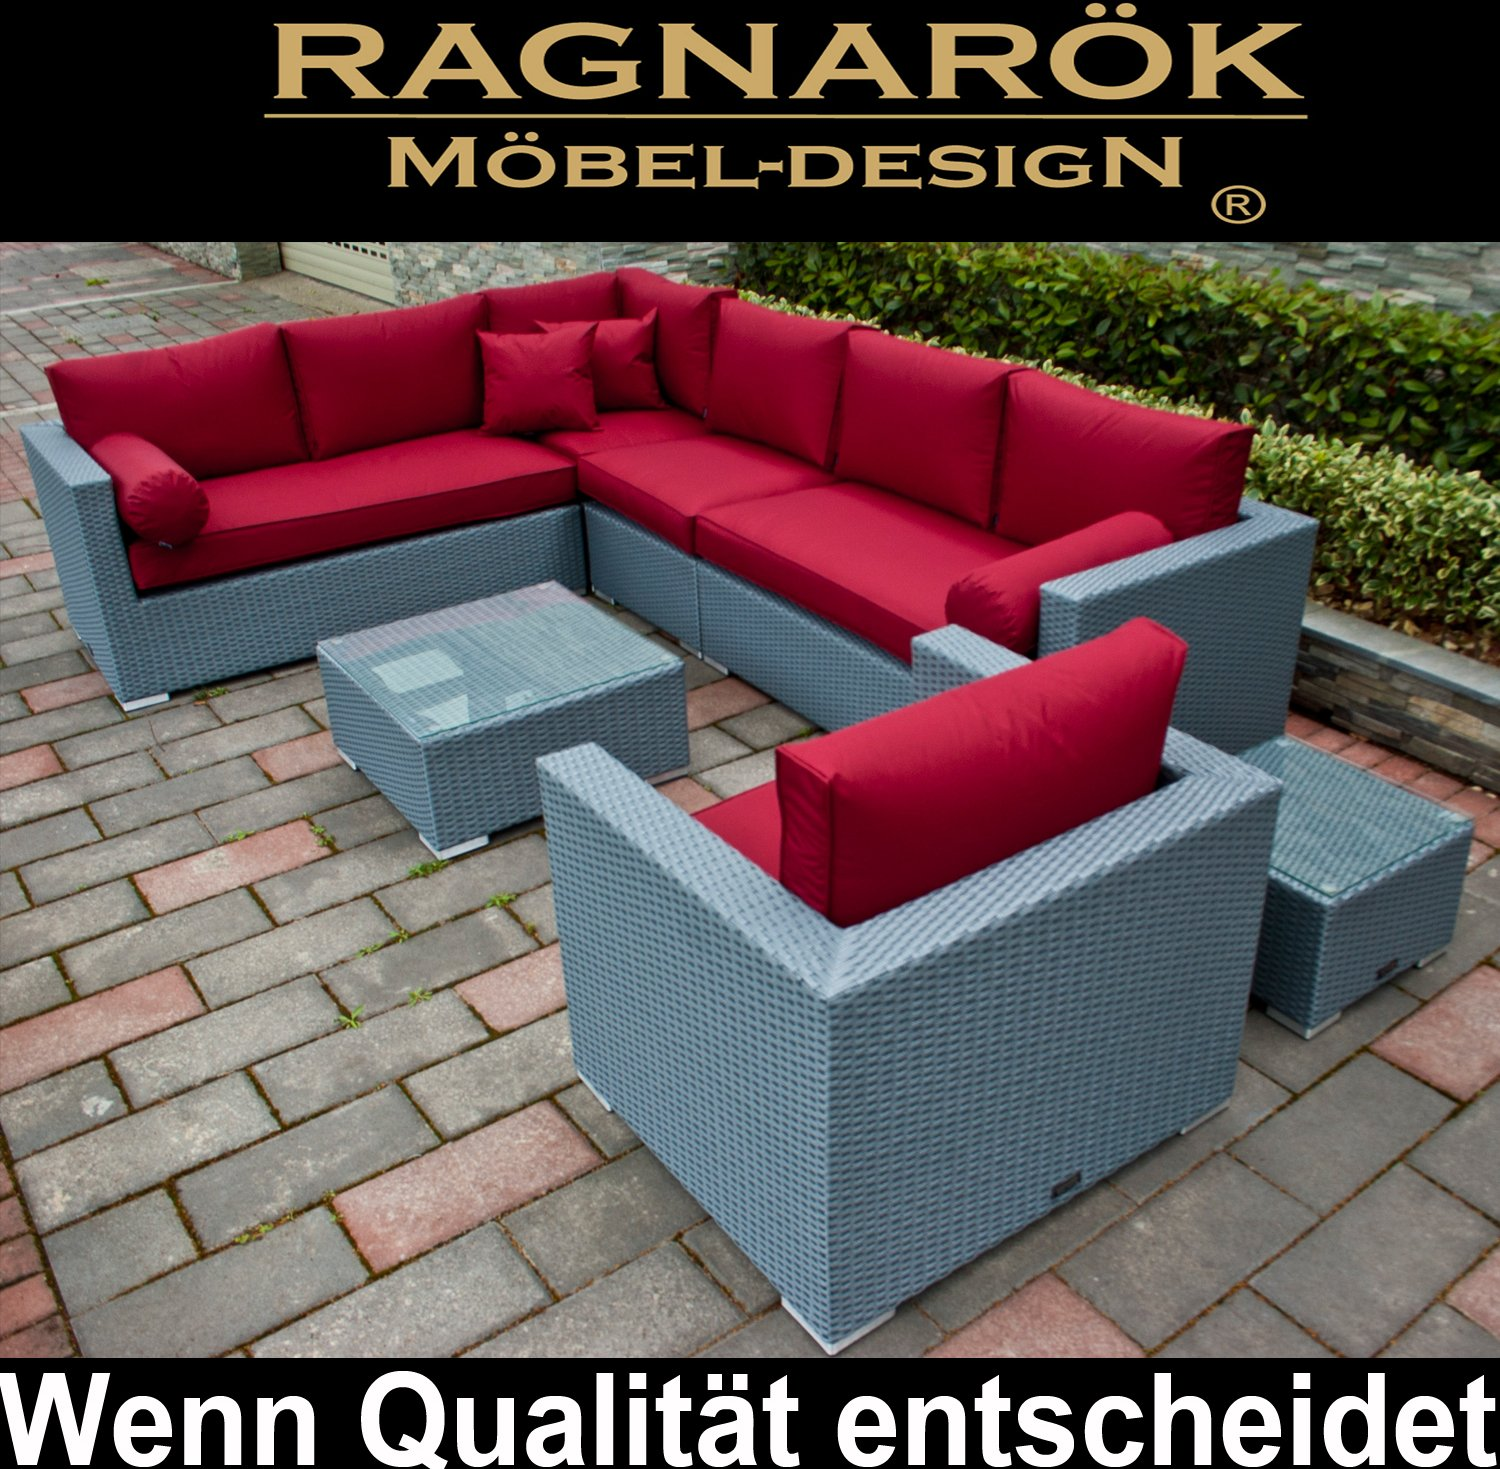 Polyrattan lounge deutsche marke eignene produktion for Design mobel bestellen